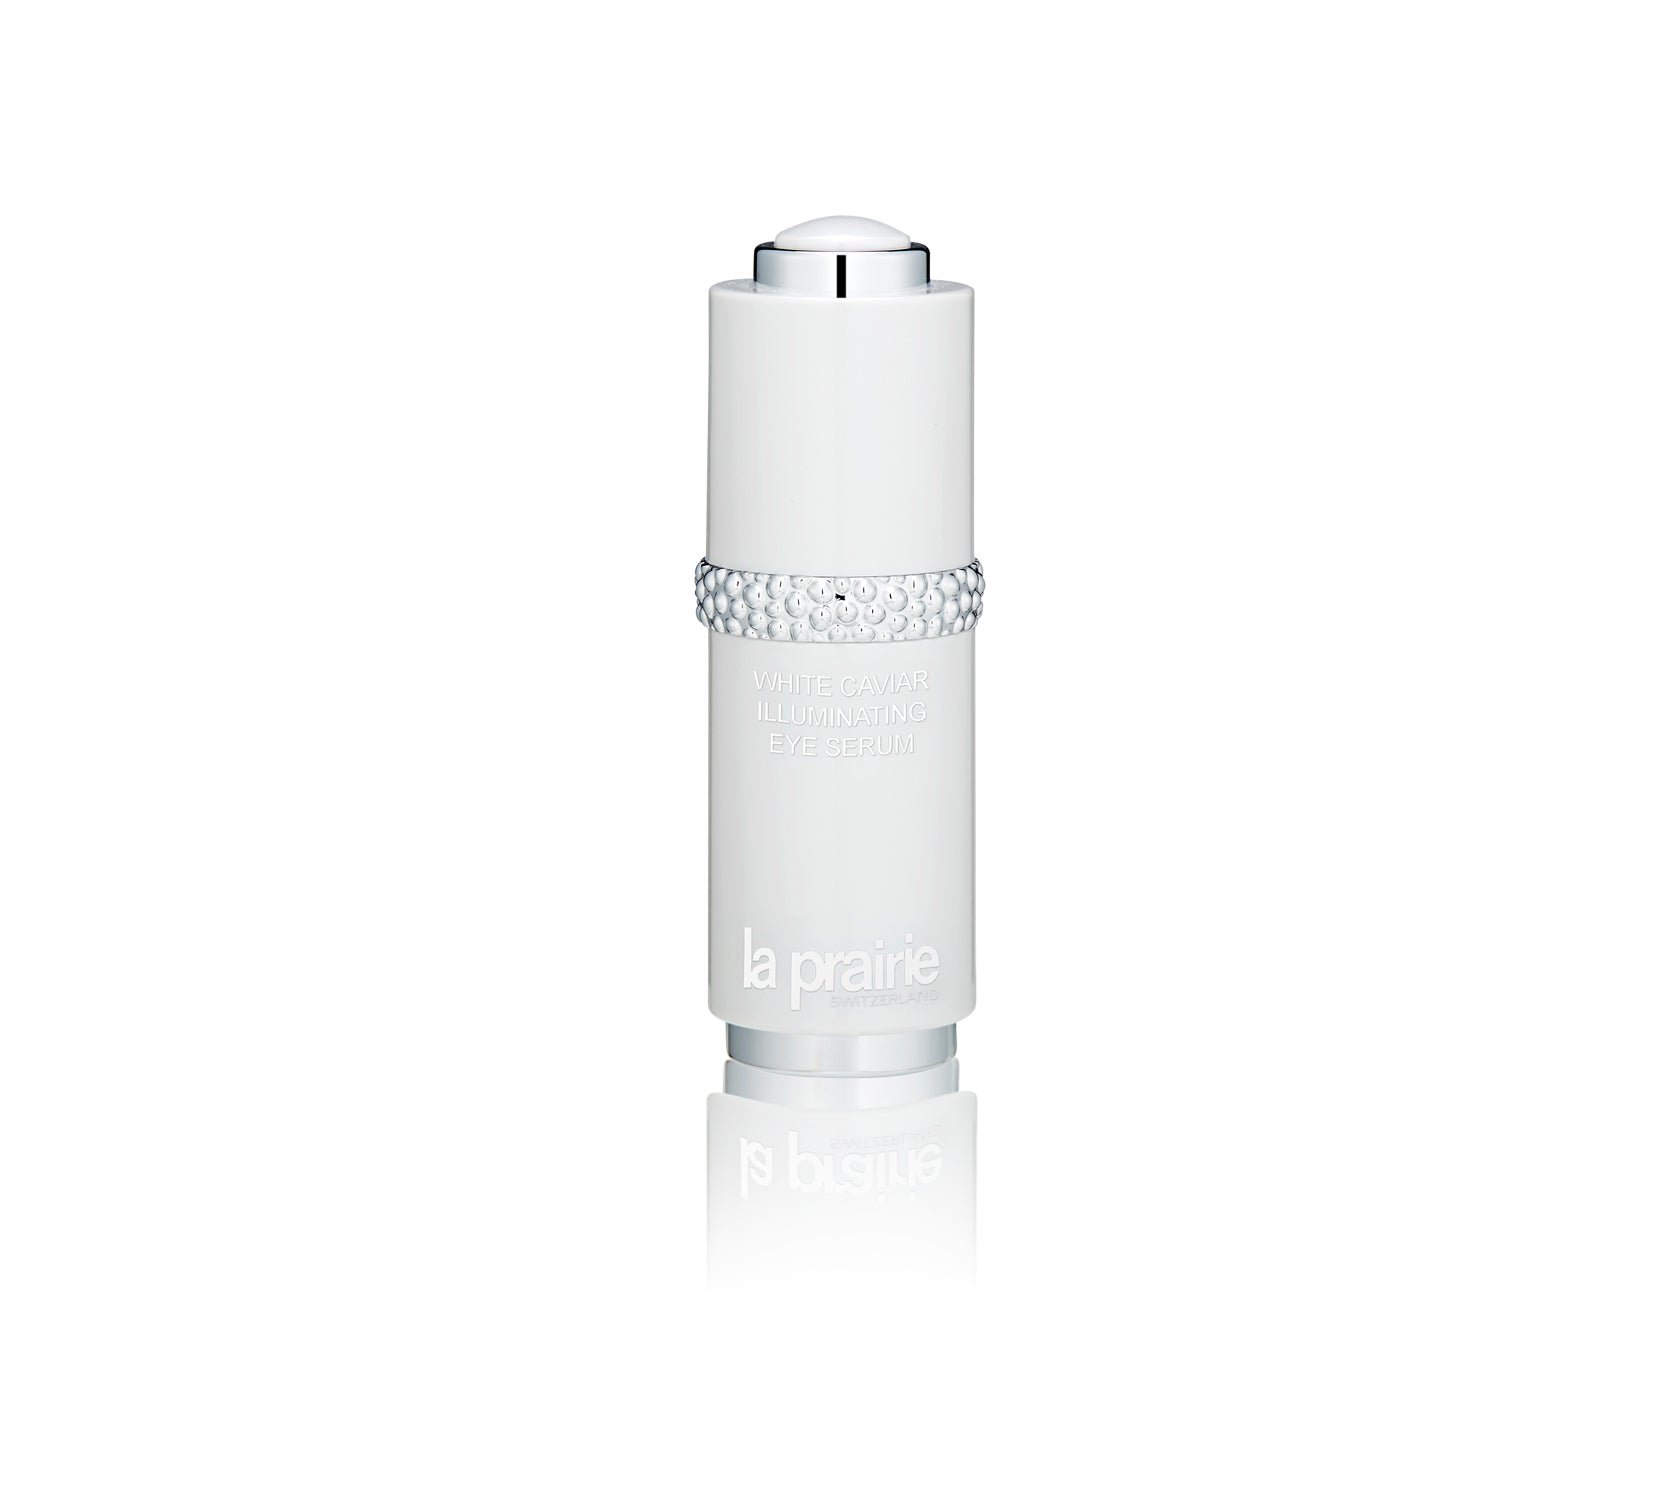 cdn-white-caviar-illuminating-eye-serum